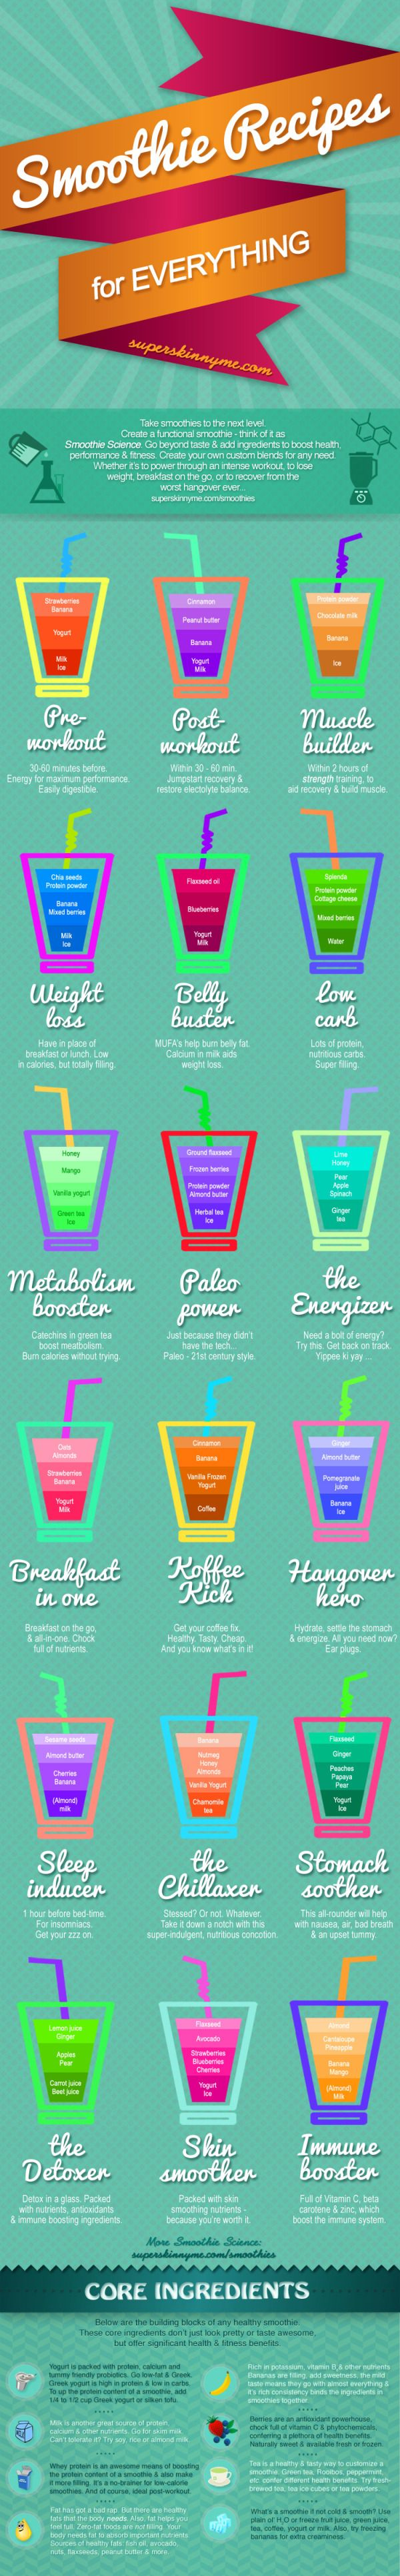 Smoothie Recipes For Everything infographic